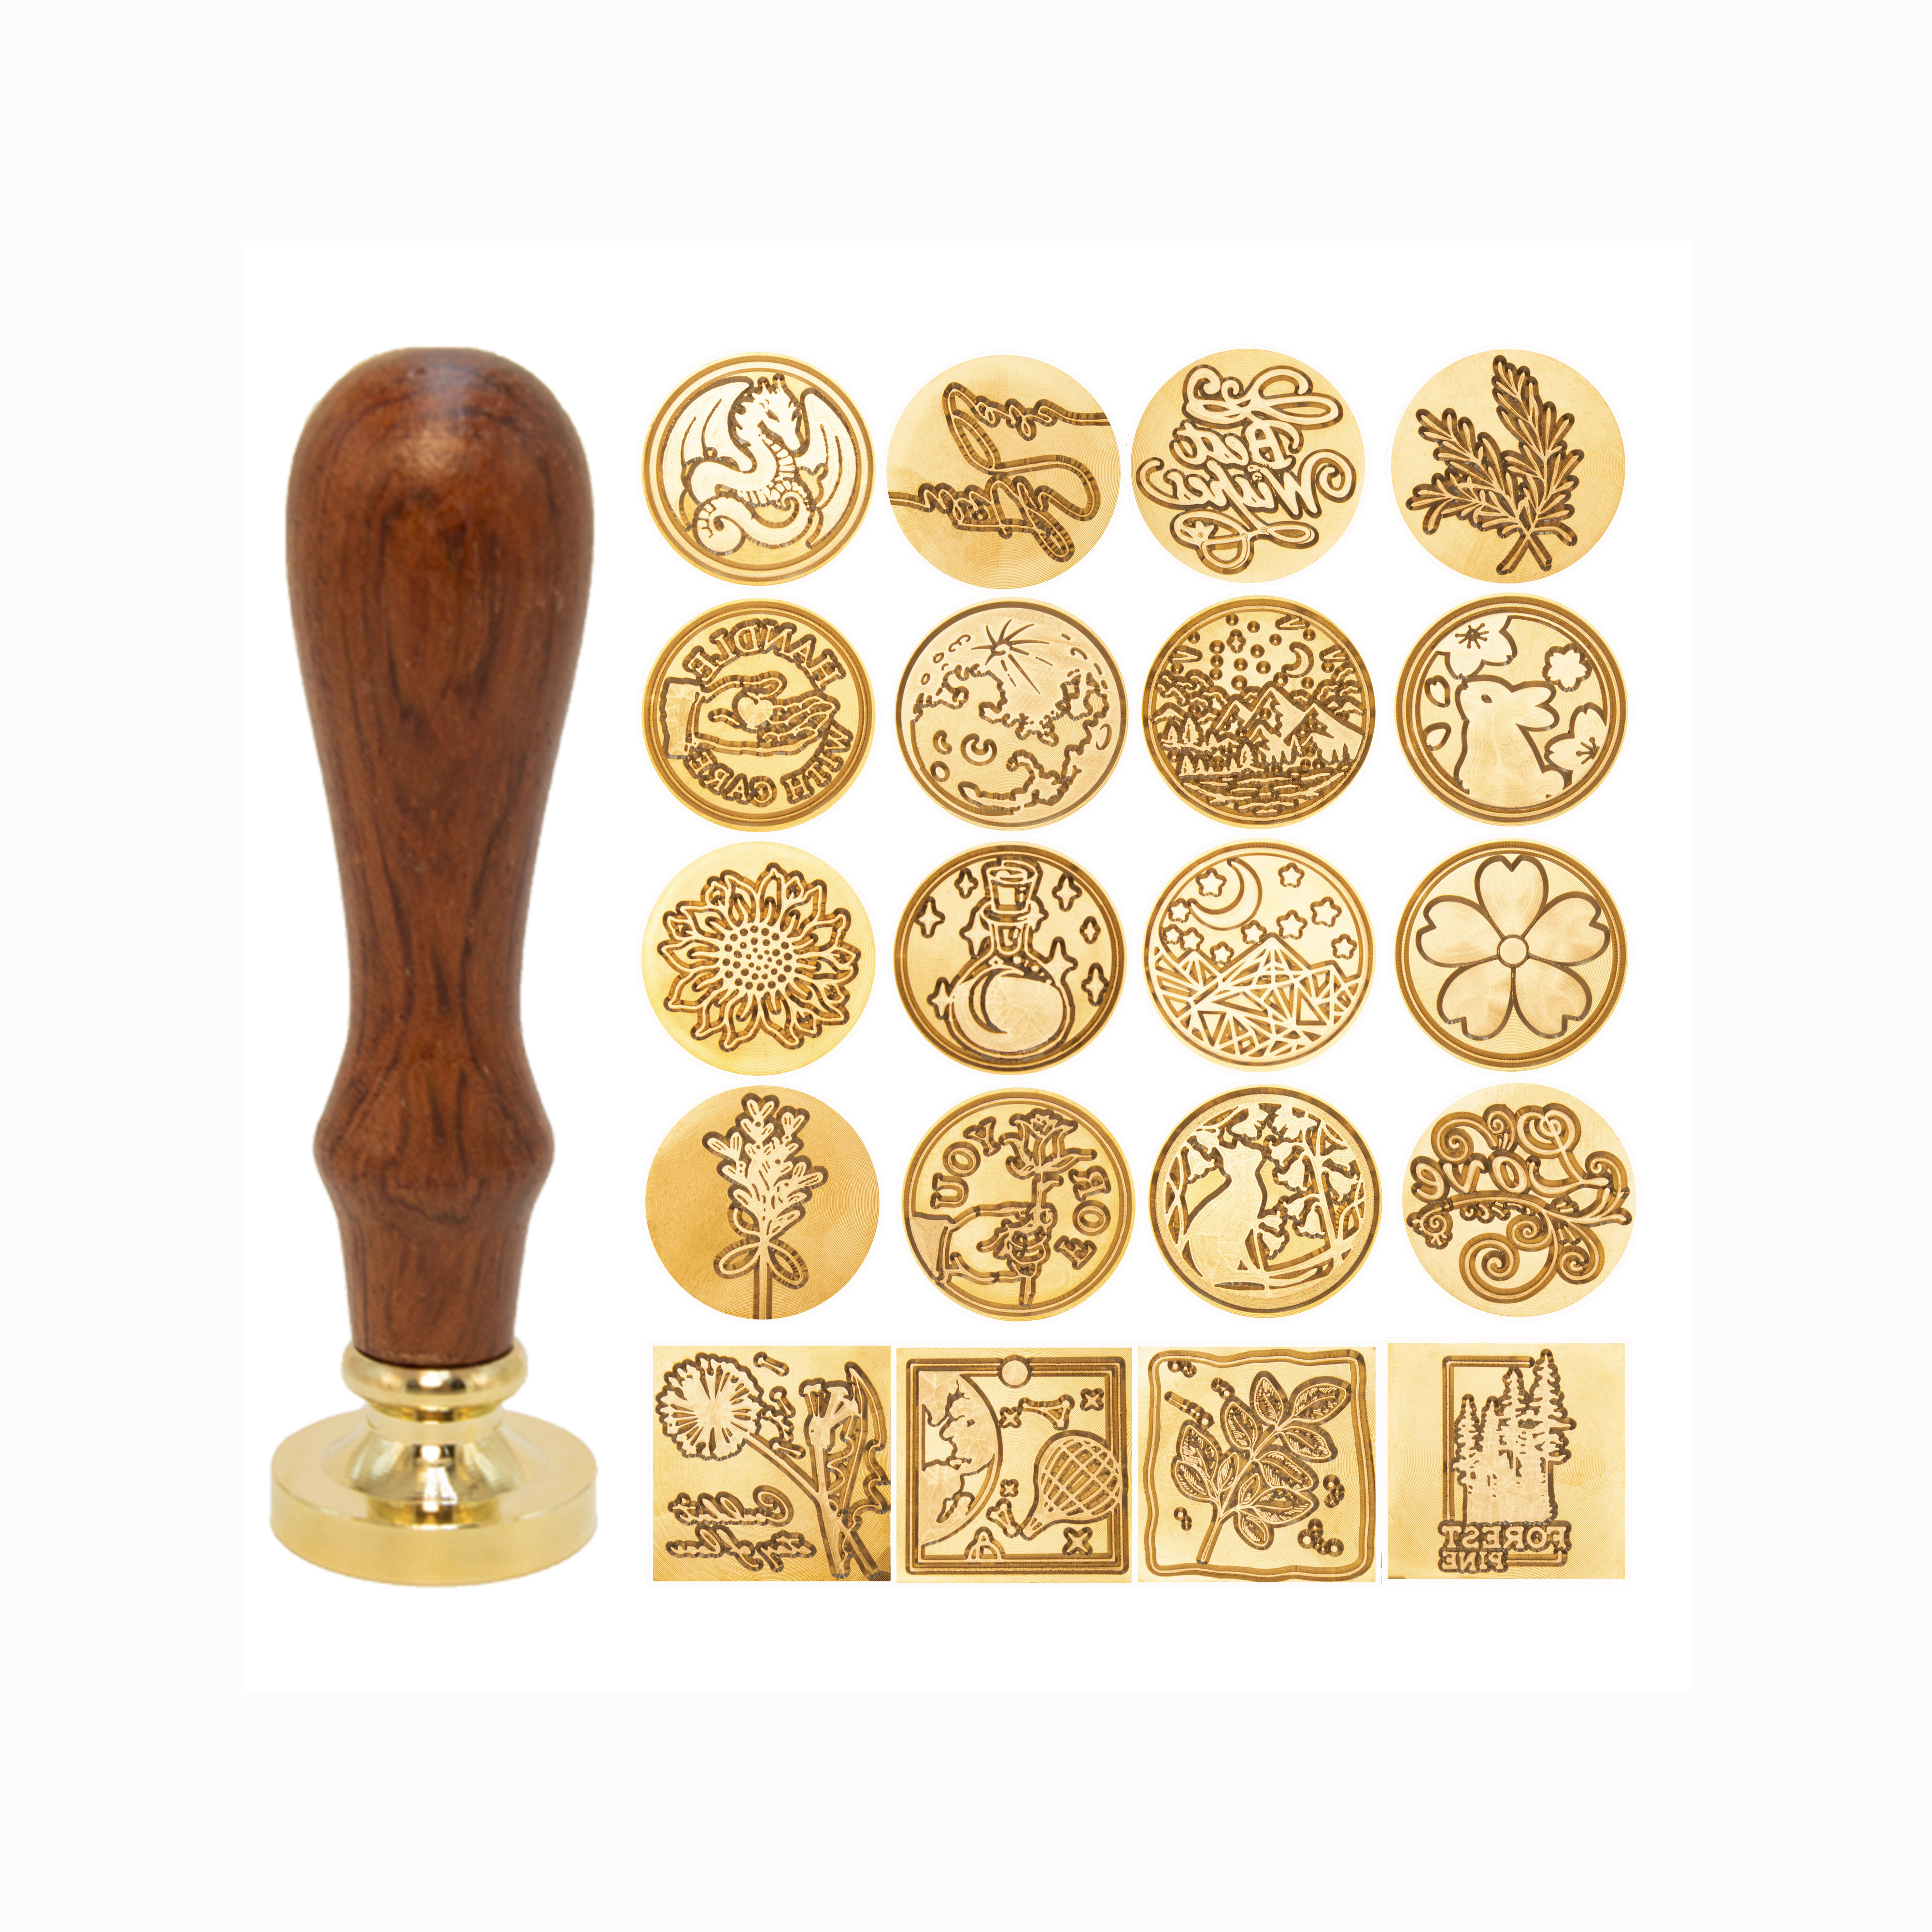 Style 023  1 pece Wax Seal Stamp dream galaxy  Metal Stamp  Wedding Wax Seal Stamp  Sealing Wax Stamp wood handle sealing stamps